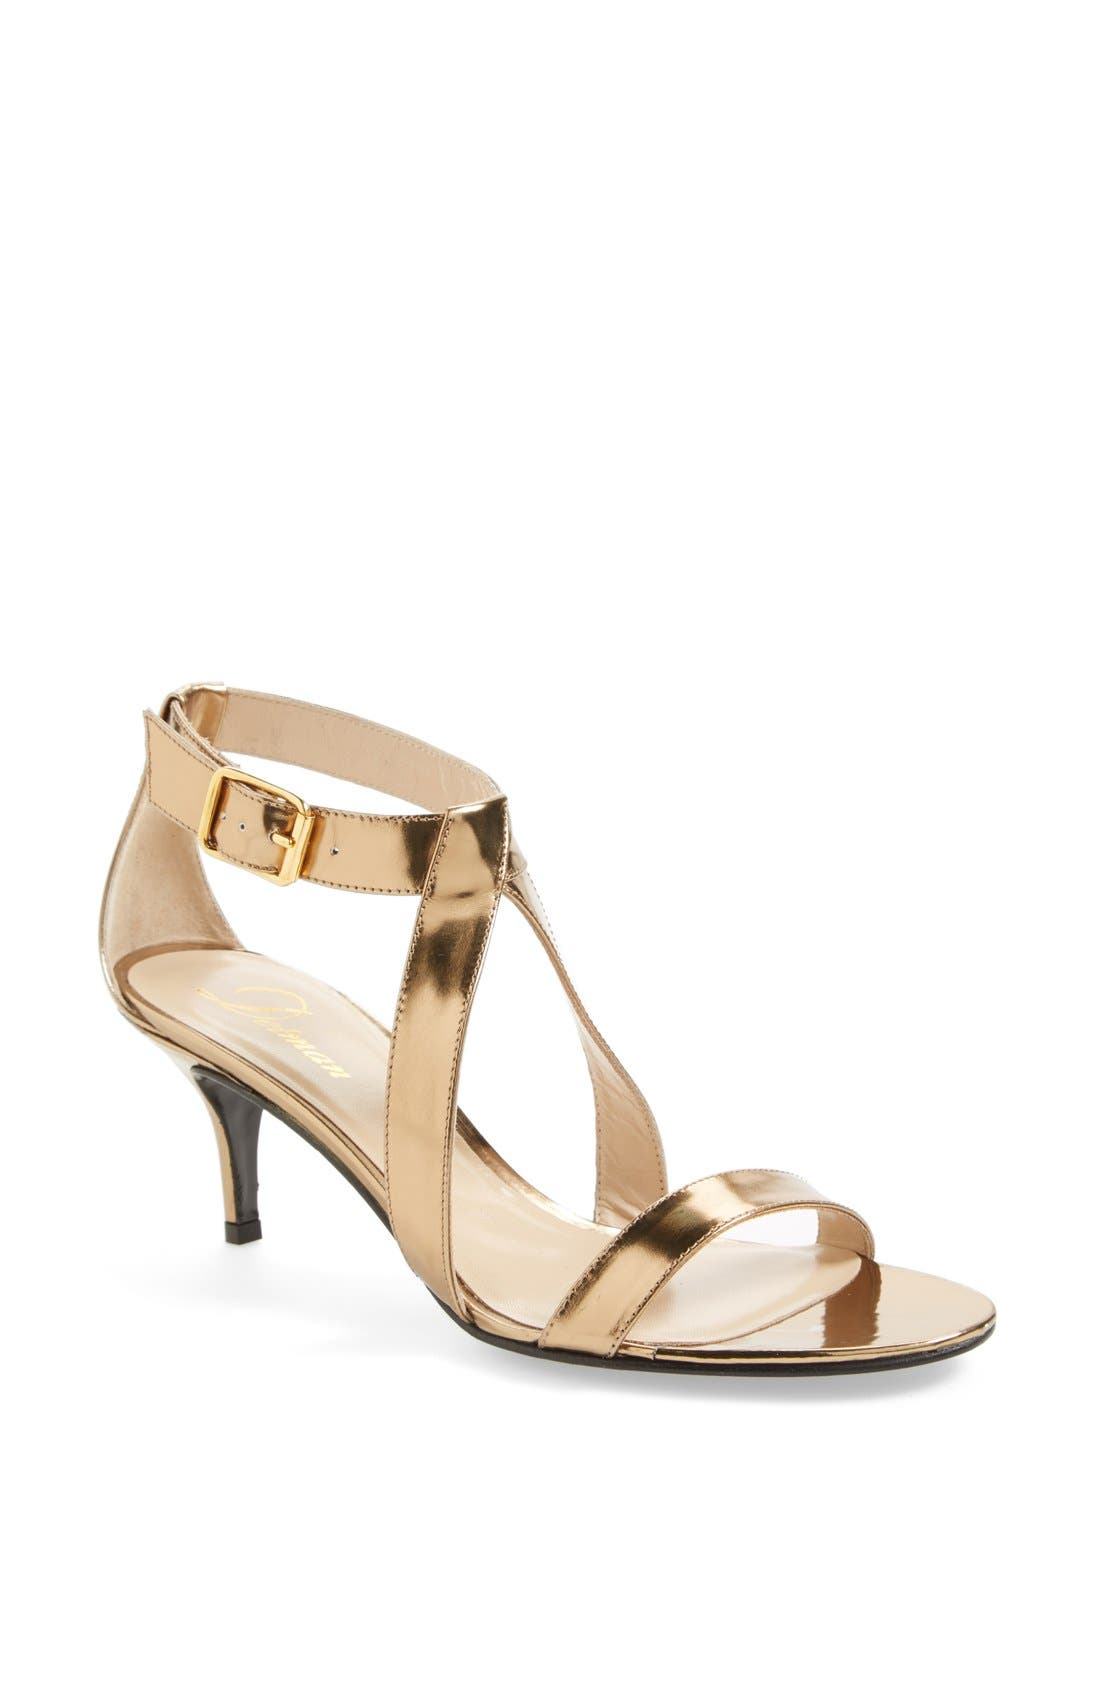 Alternate Image 1 Selected - Delman 'Tori' Sandal (Online Only)